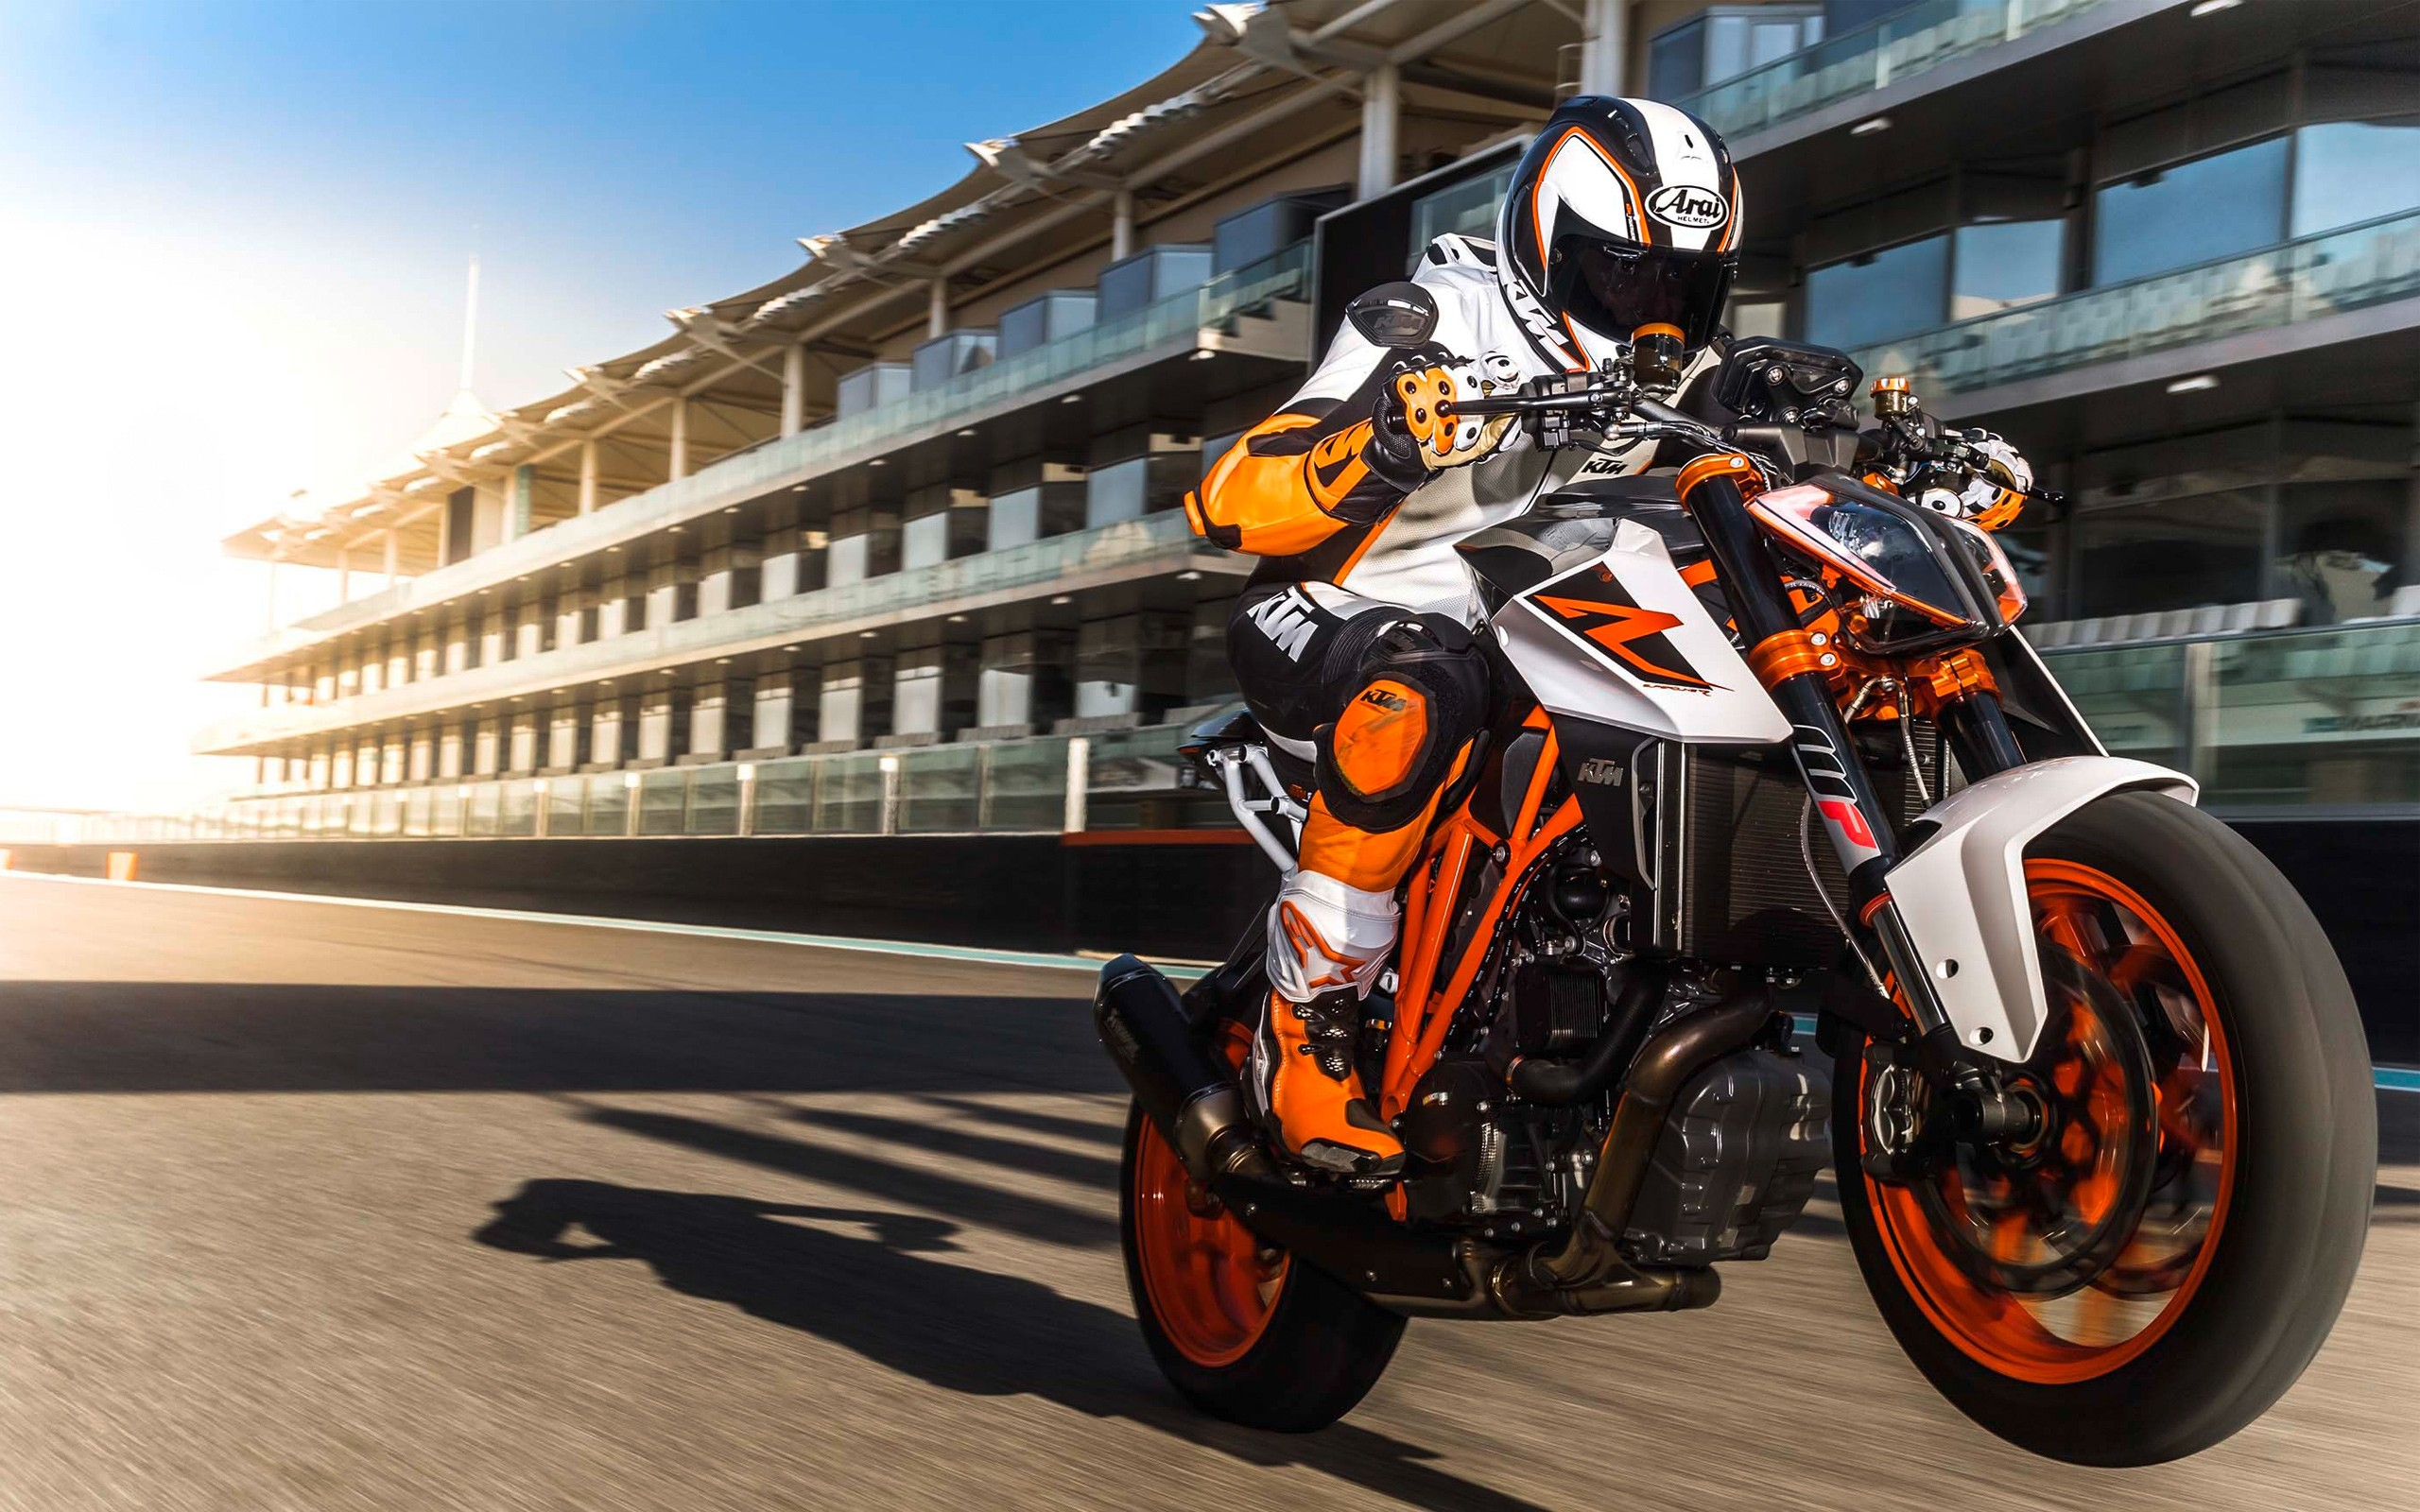 43 Hd Wallpaper Of Ktm Duke 390 Pictures Total Update Get ktm wallpaper hd for pc pics